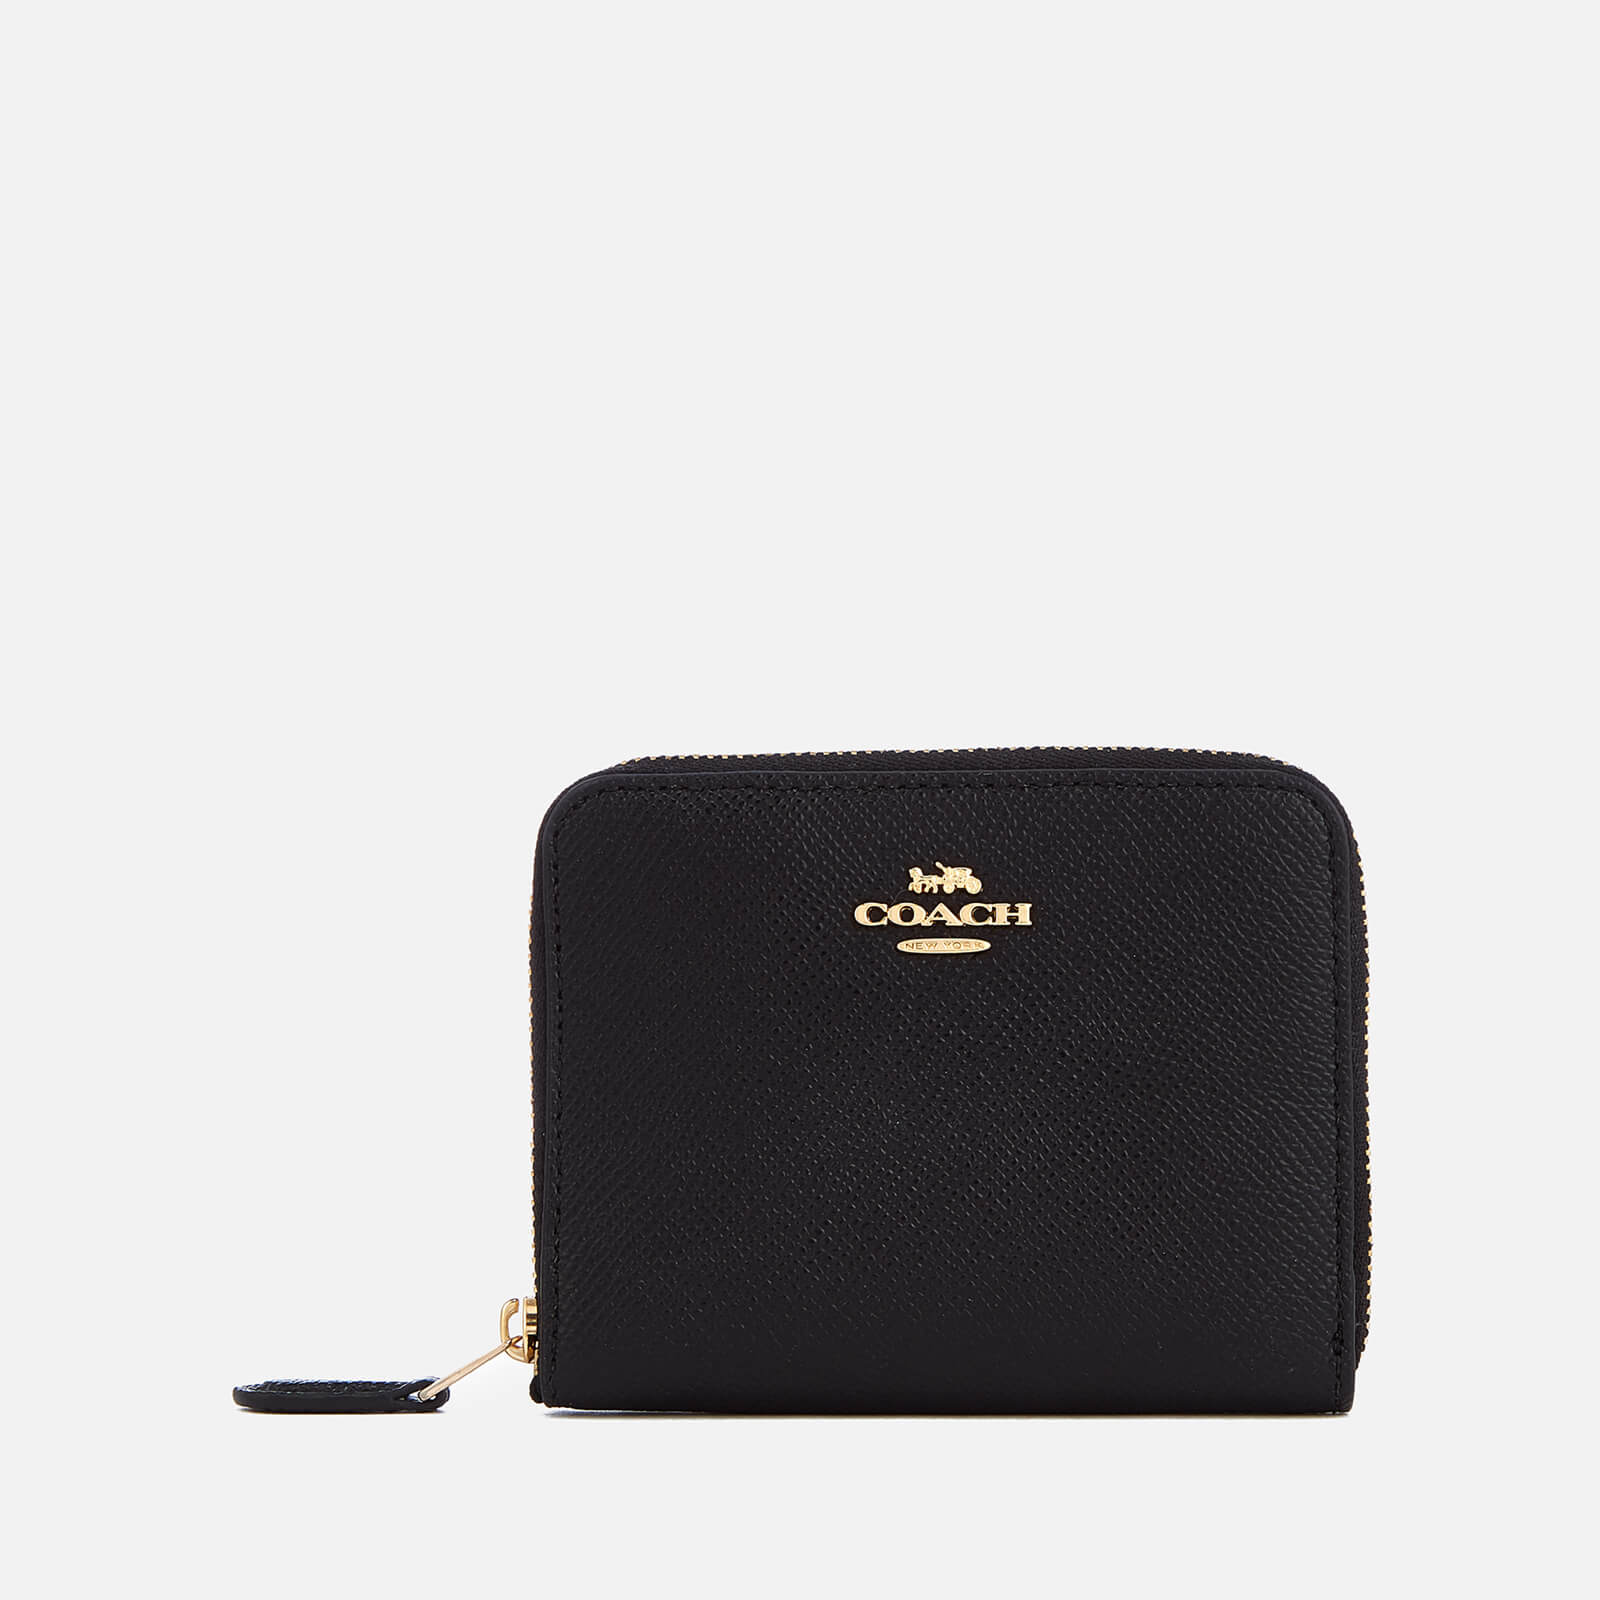 fc5dcc0ab7 Coach Women s Crossgrain Leather Small Zip Around Wallet - Black - Free UK  Delivery over £50